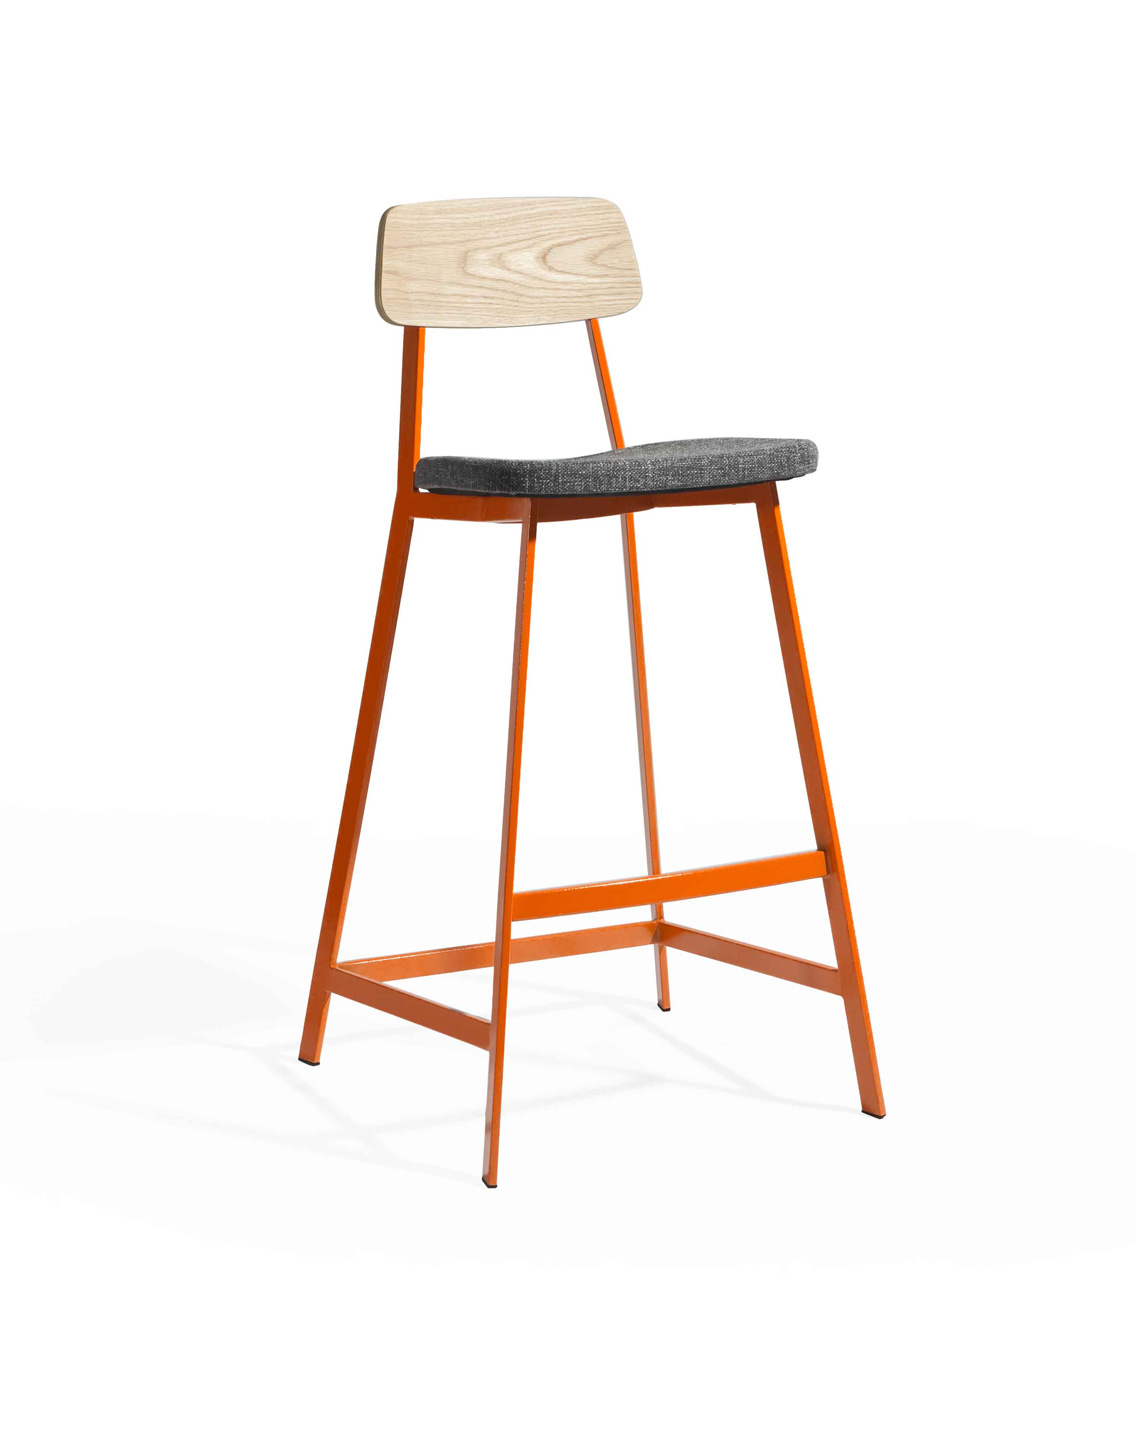 Awe Inspiring Sprint Sd9340E Counter Stool Cape Furniture Unemploymentrelief Wooden Chair Designs For Living Room Unemploymentrelieforg